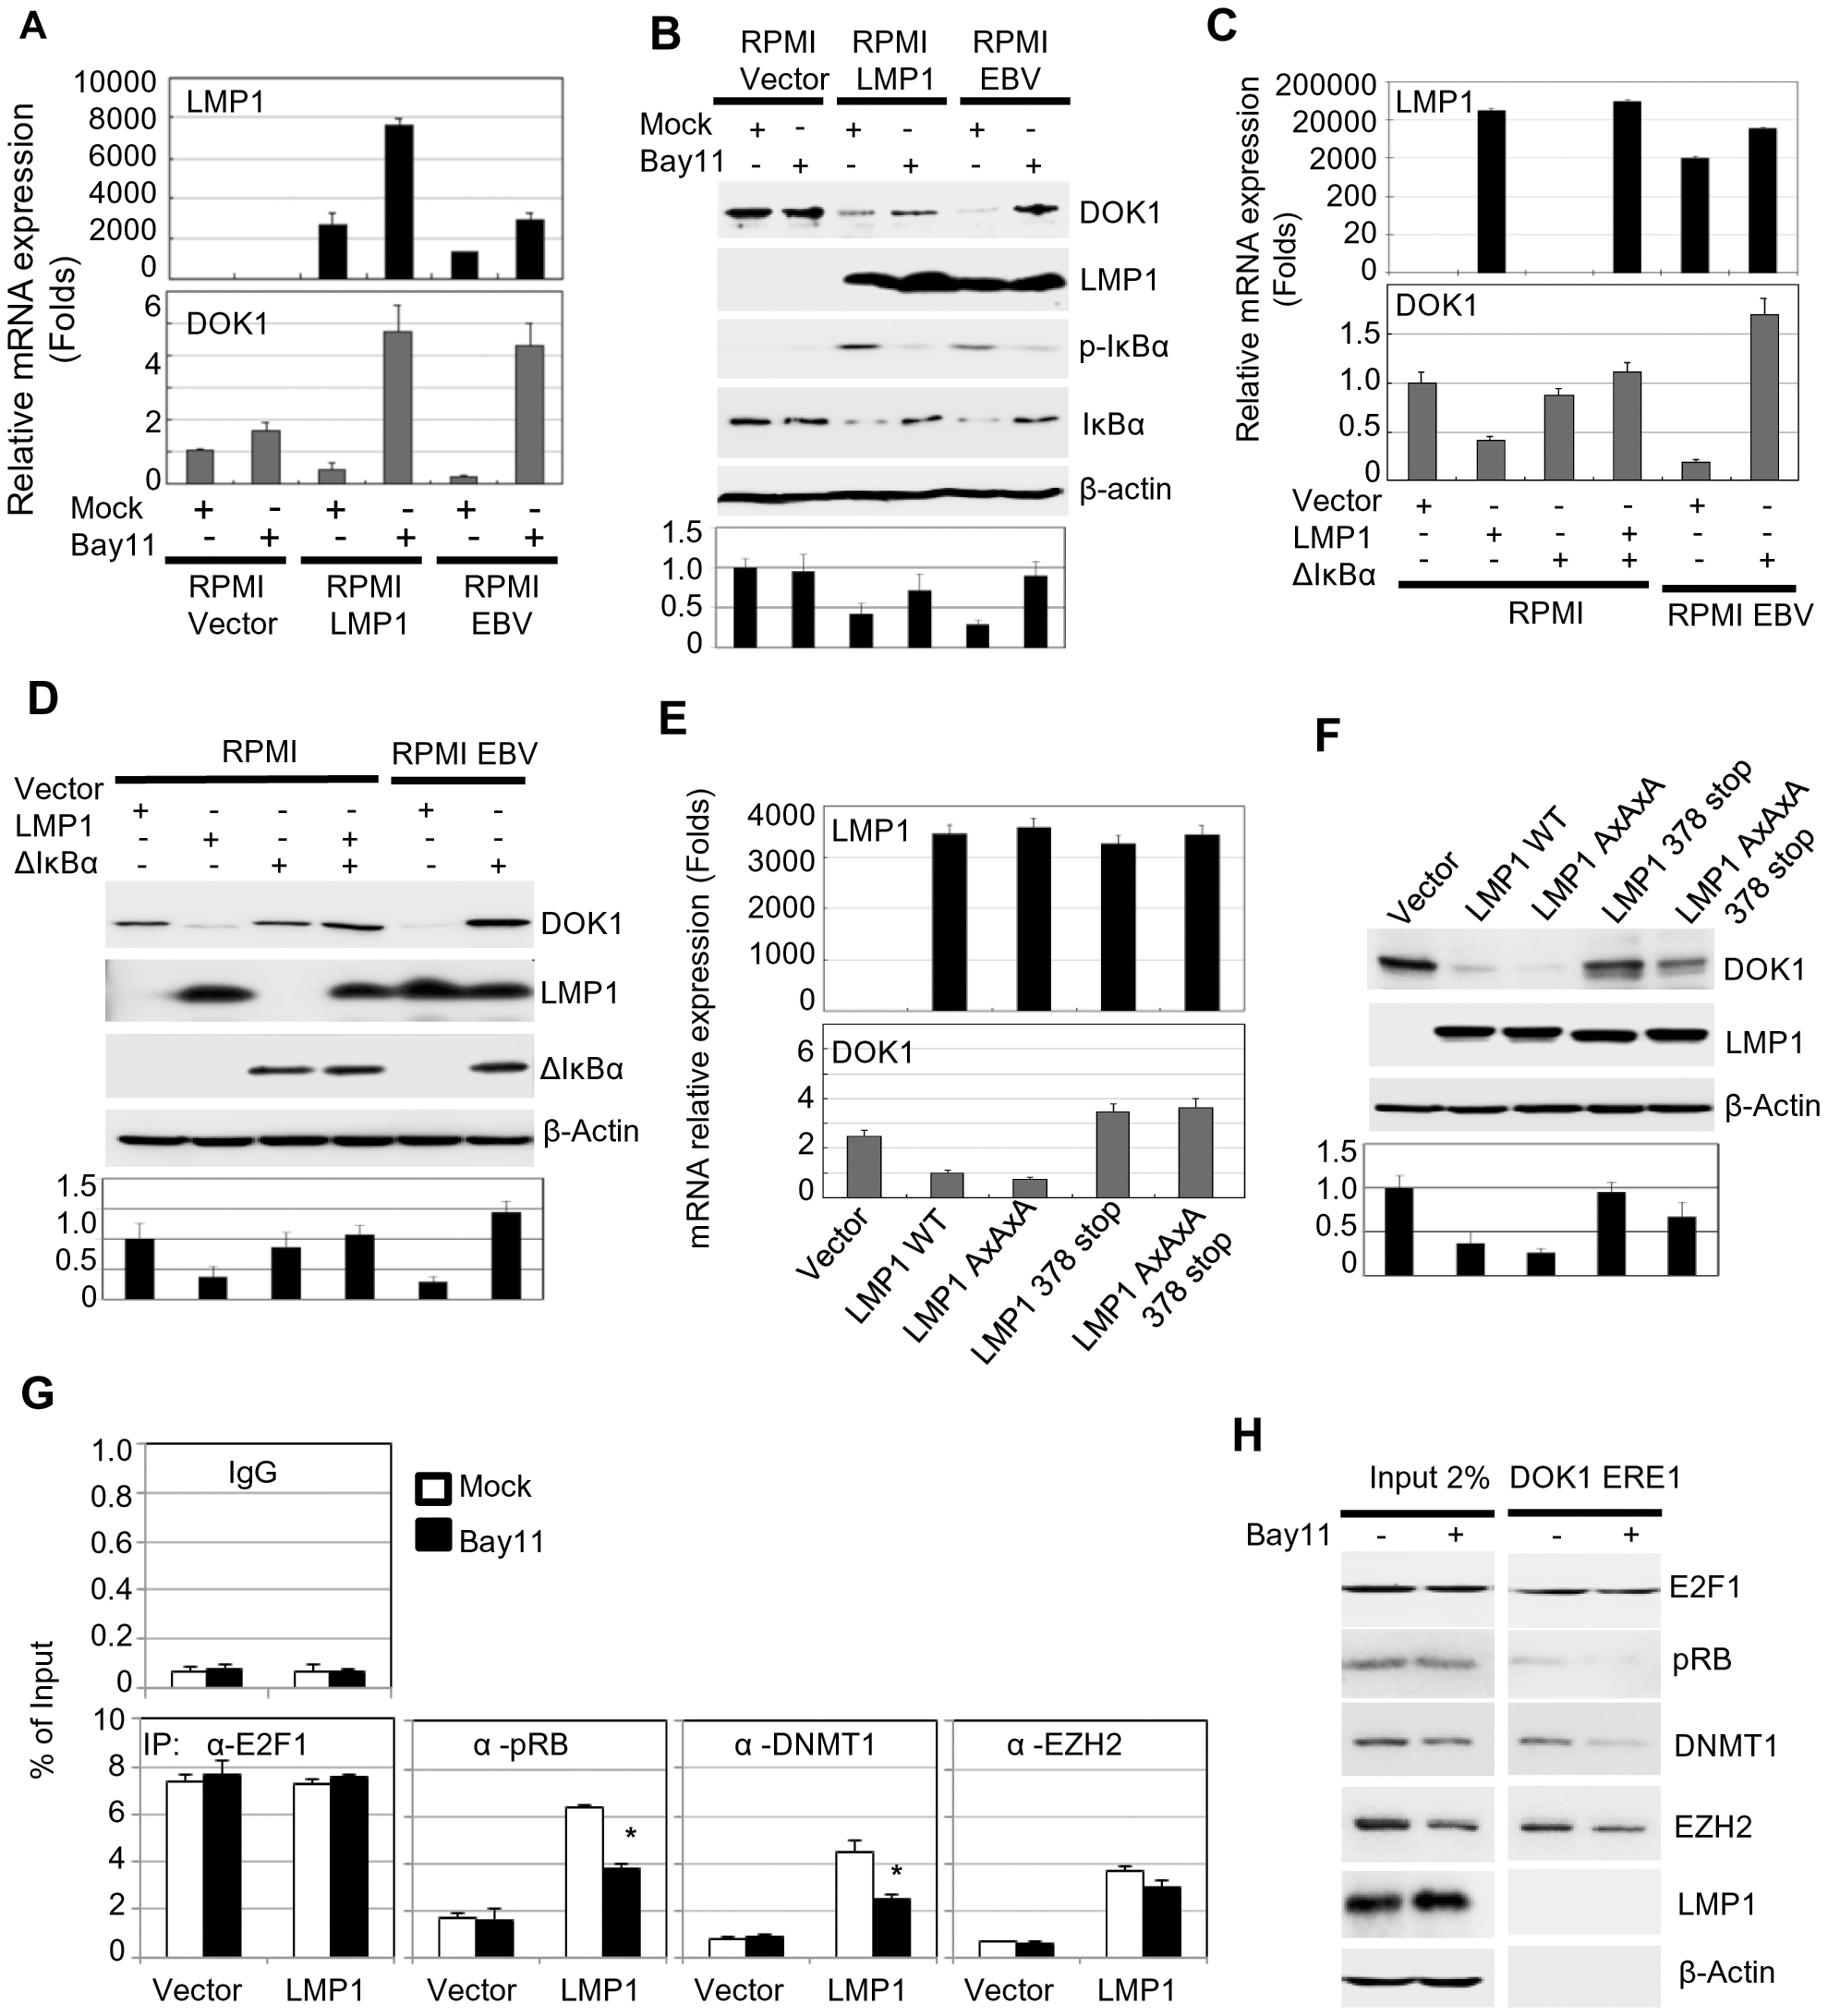 LMP1-mediated NF-κB activation is required for EBV-related <i>DOK1</i> down-regulation.